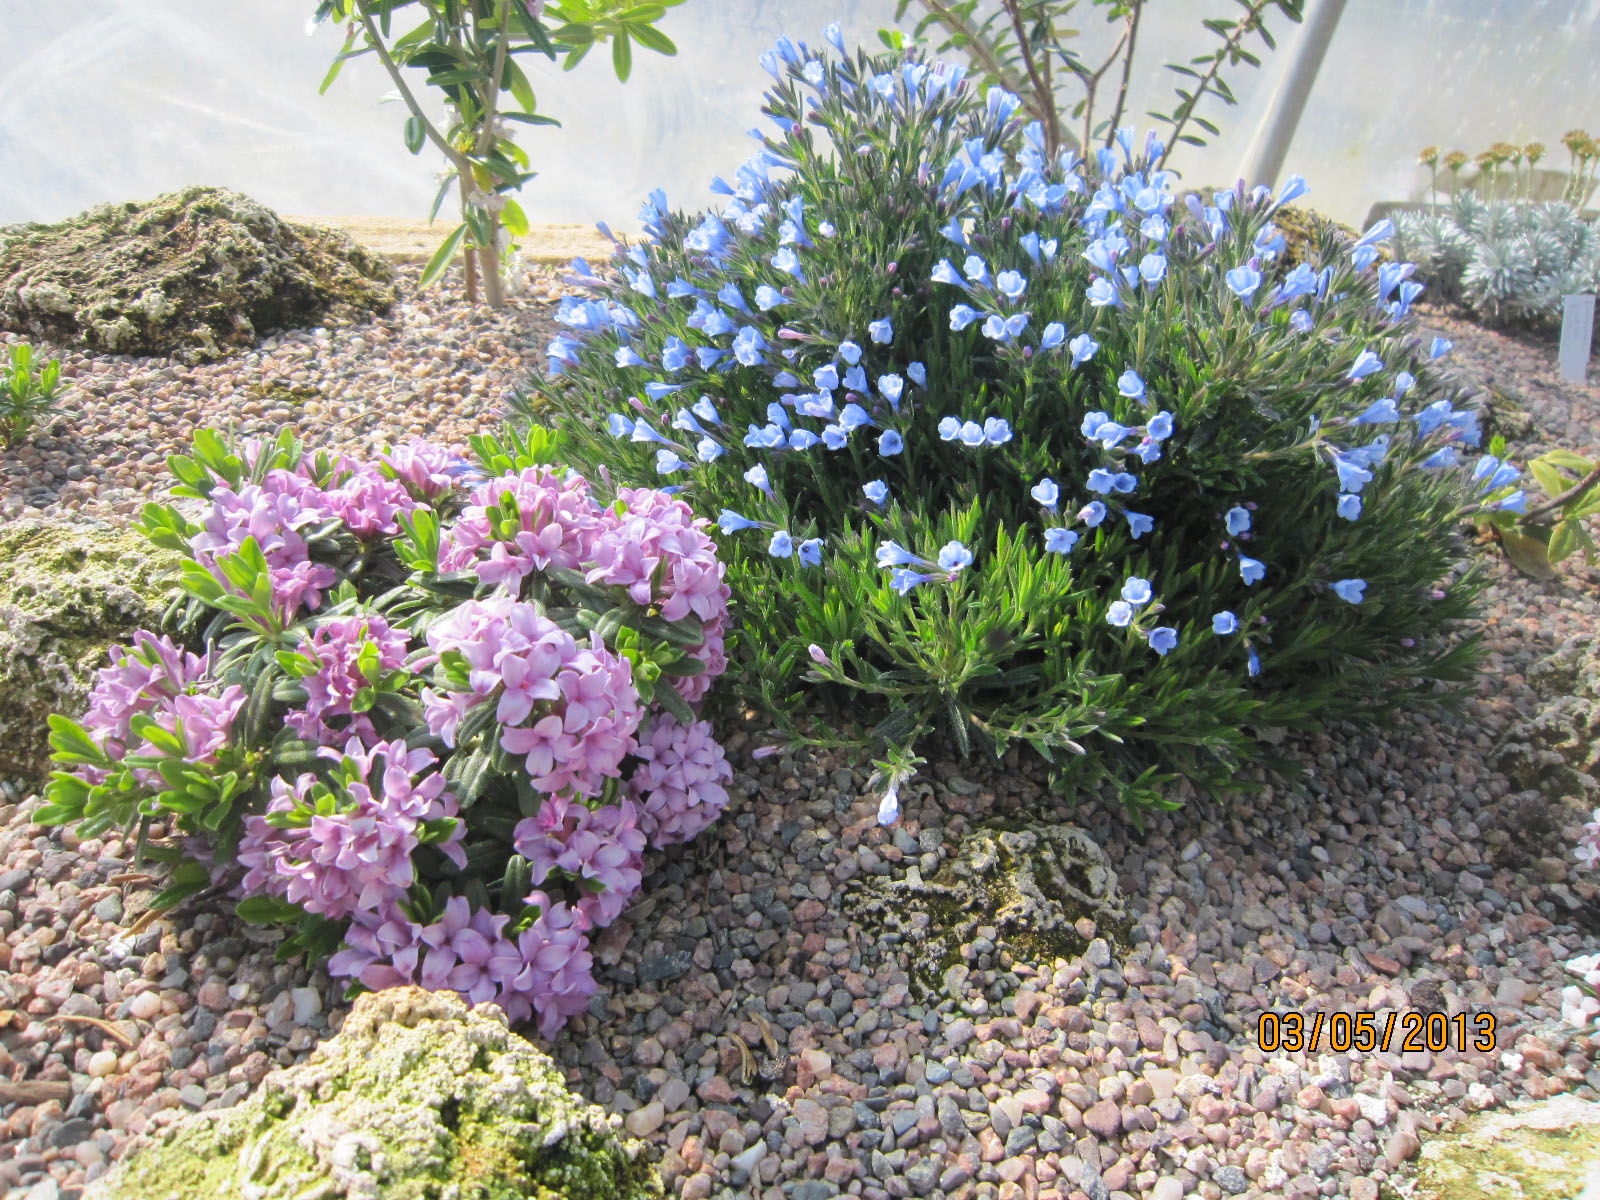 Daphne x susannae 'Cheriton' (left), Lithodora zahnii 'Azure Ness' (right)